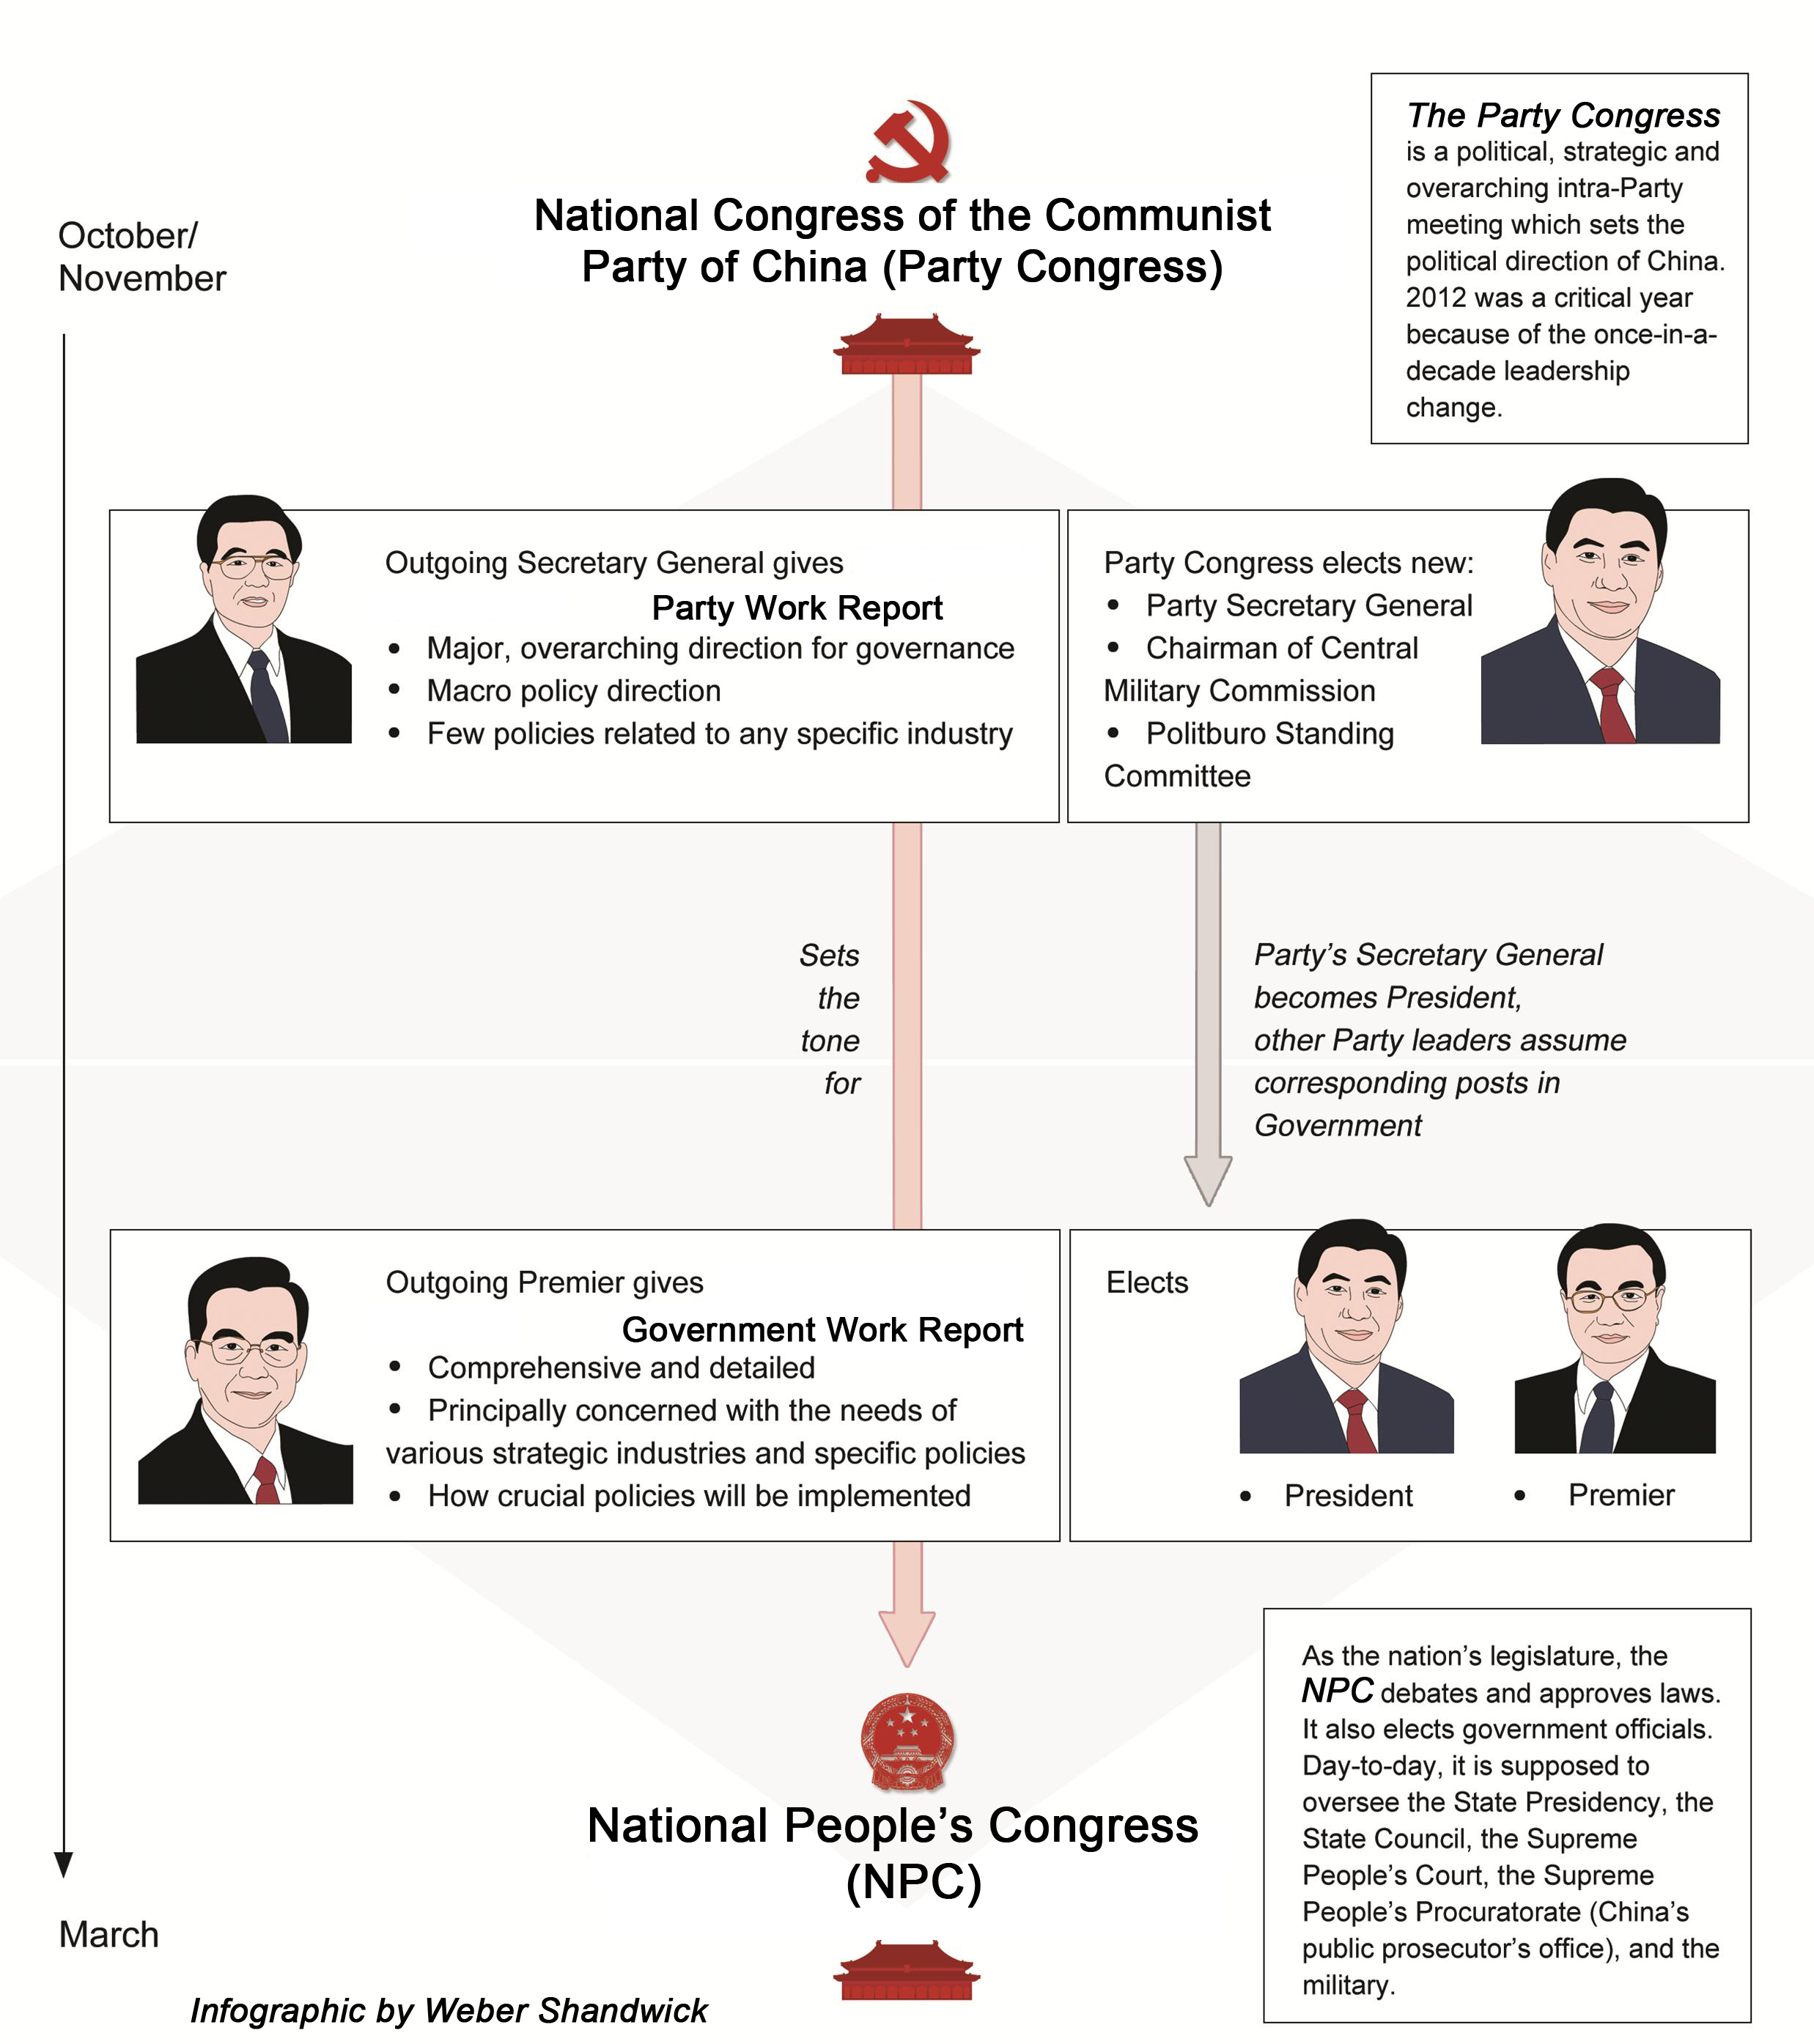 infographic of China's Leadership